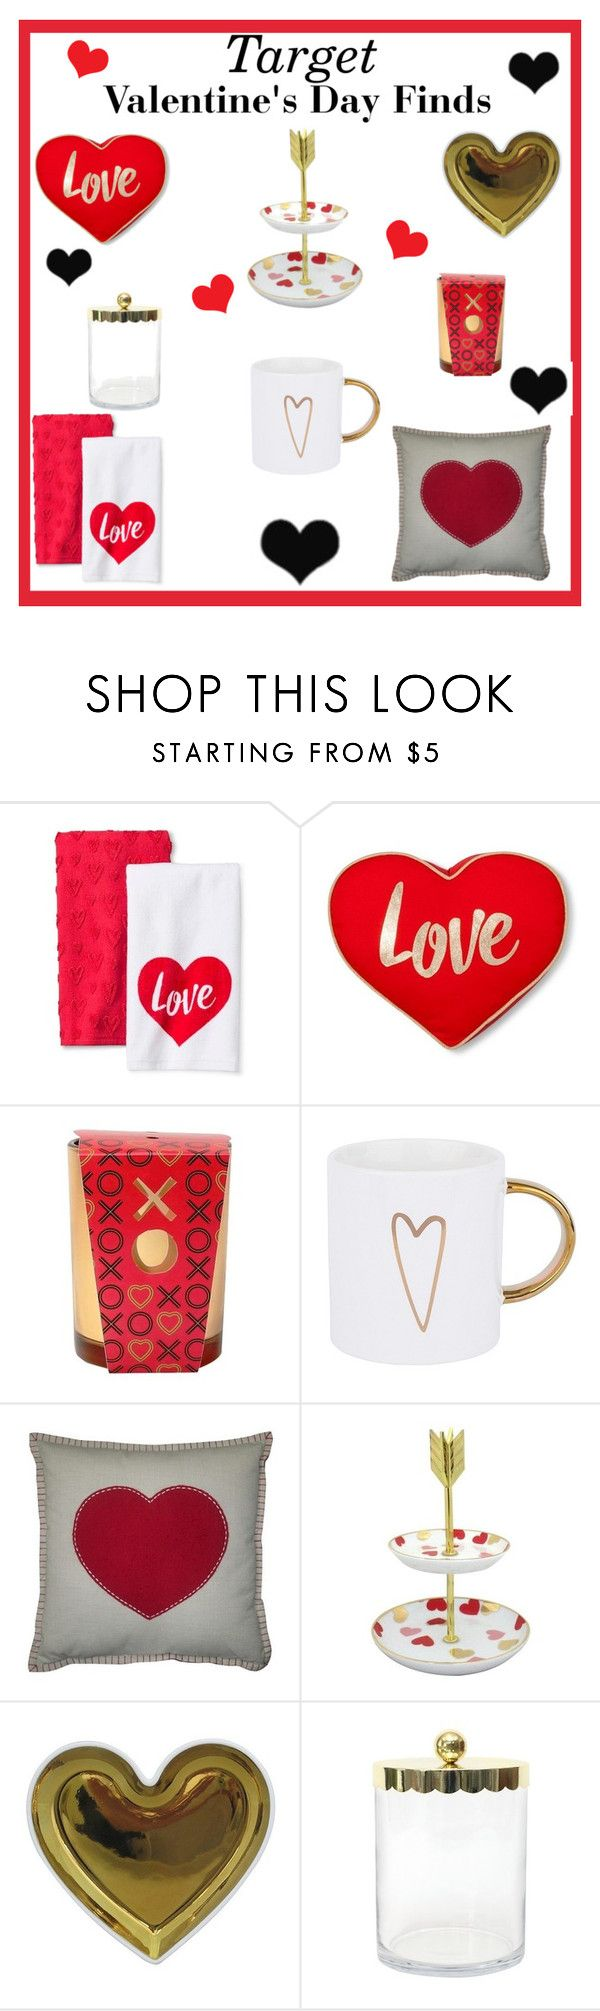 """""""Target Valentine's Day Finds"""" by lanaebond ❤ liked on Polyvore featuring XOXO, West 